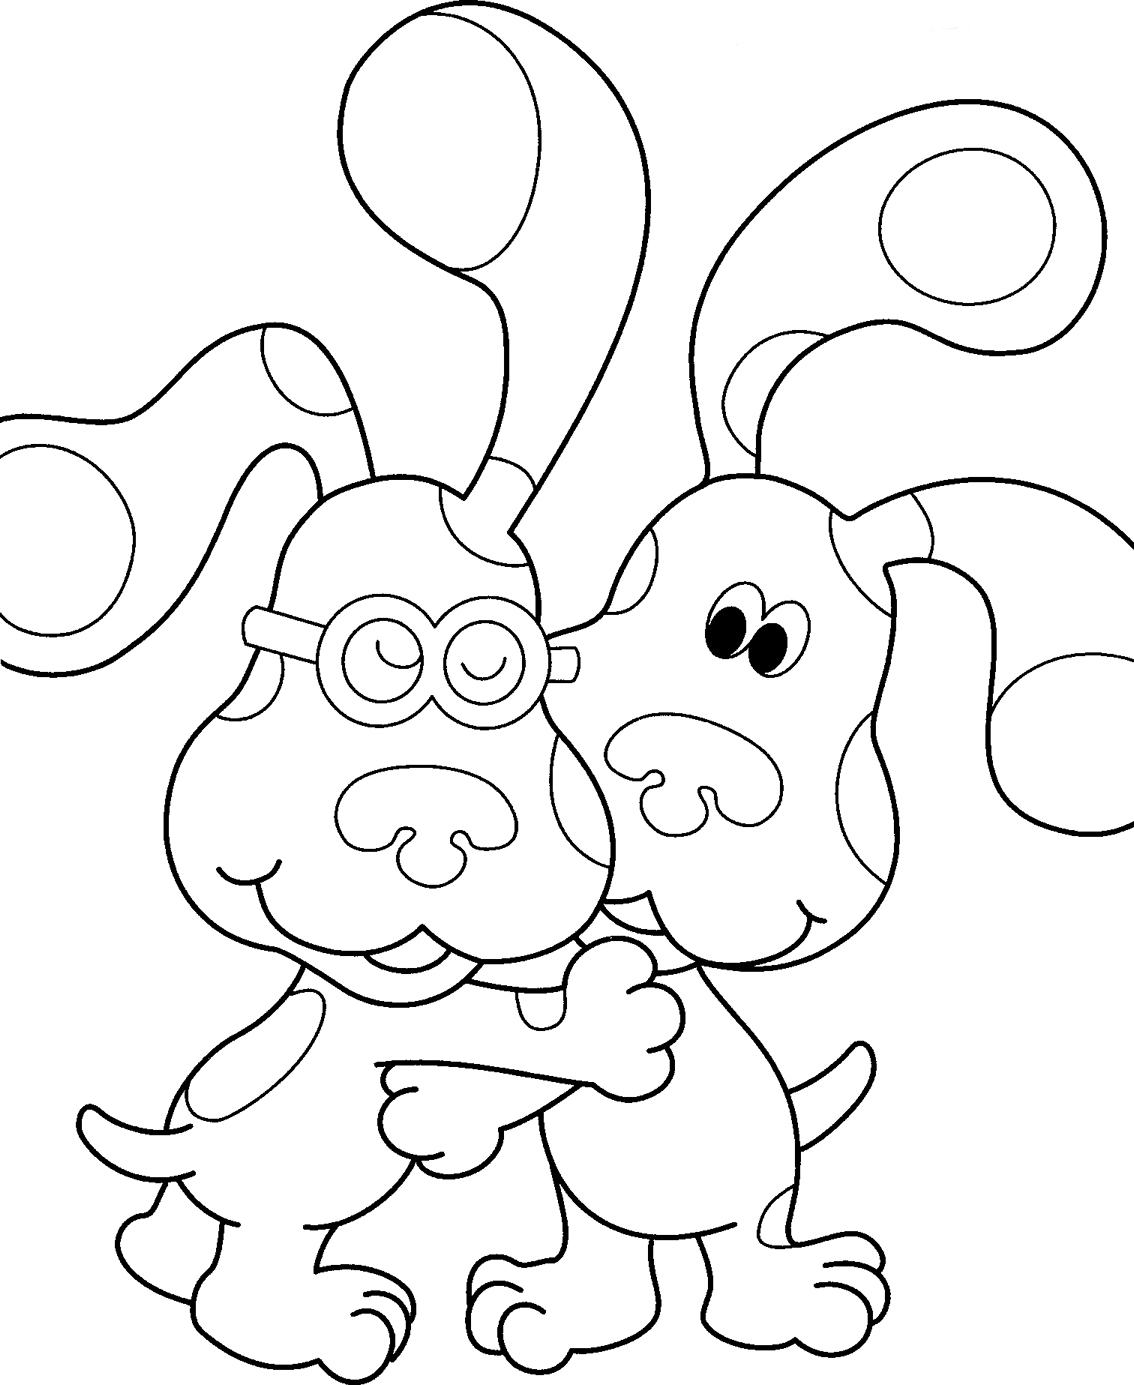 Printable coloring pages nick jr - Download Nick Jr Coloring Pages 6 Print